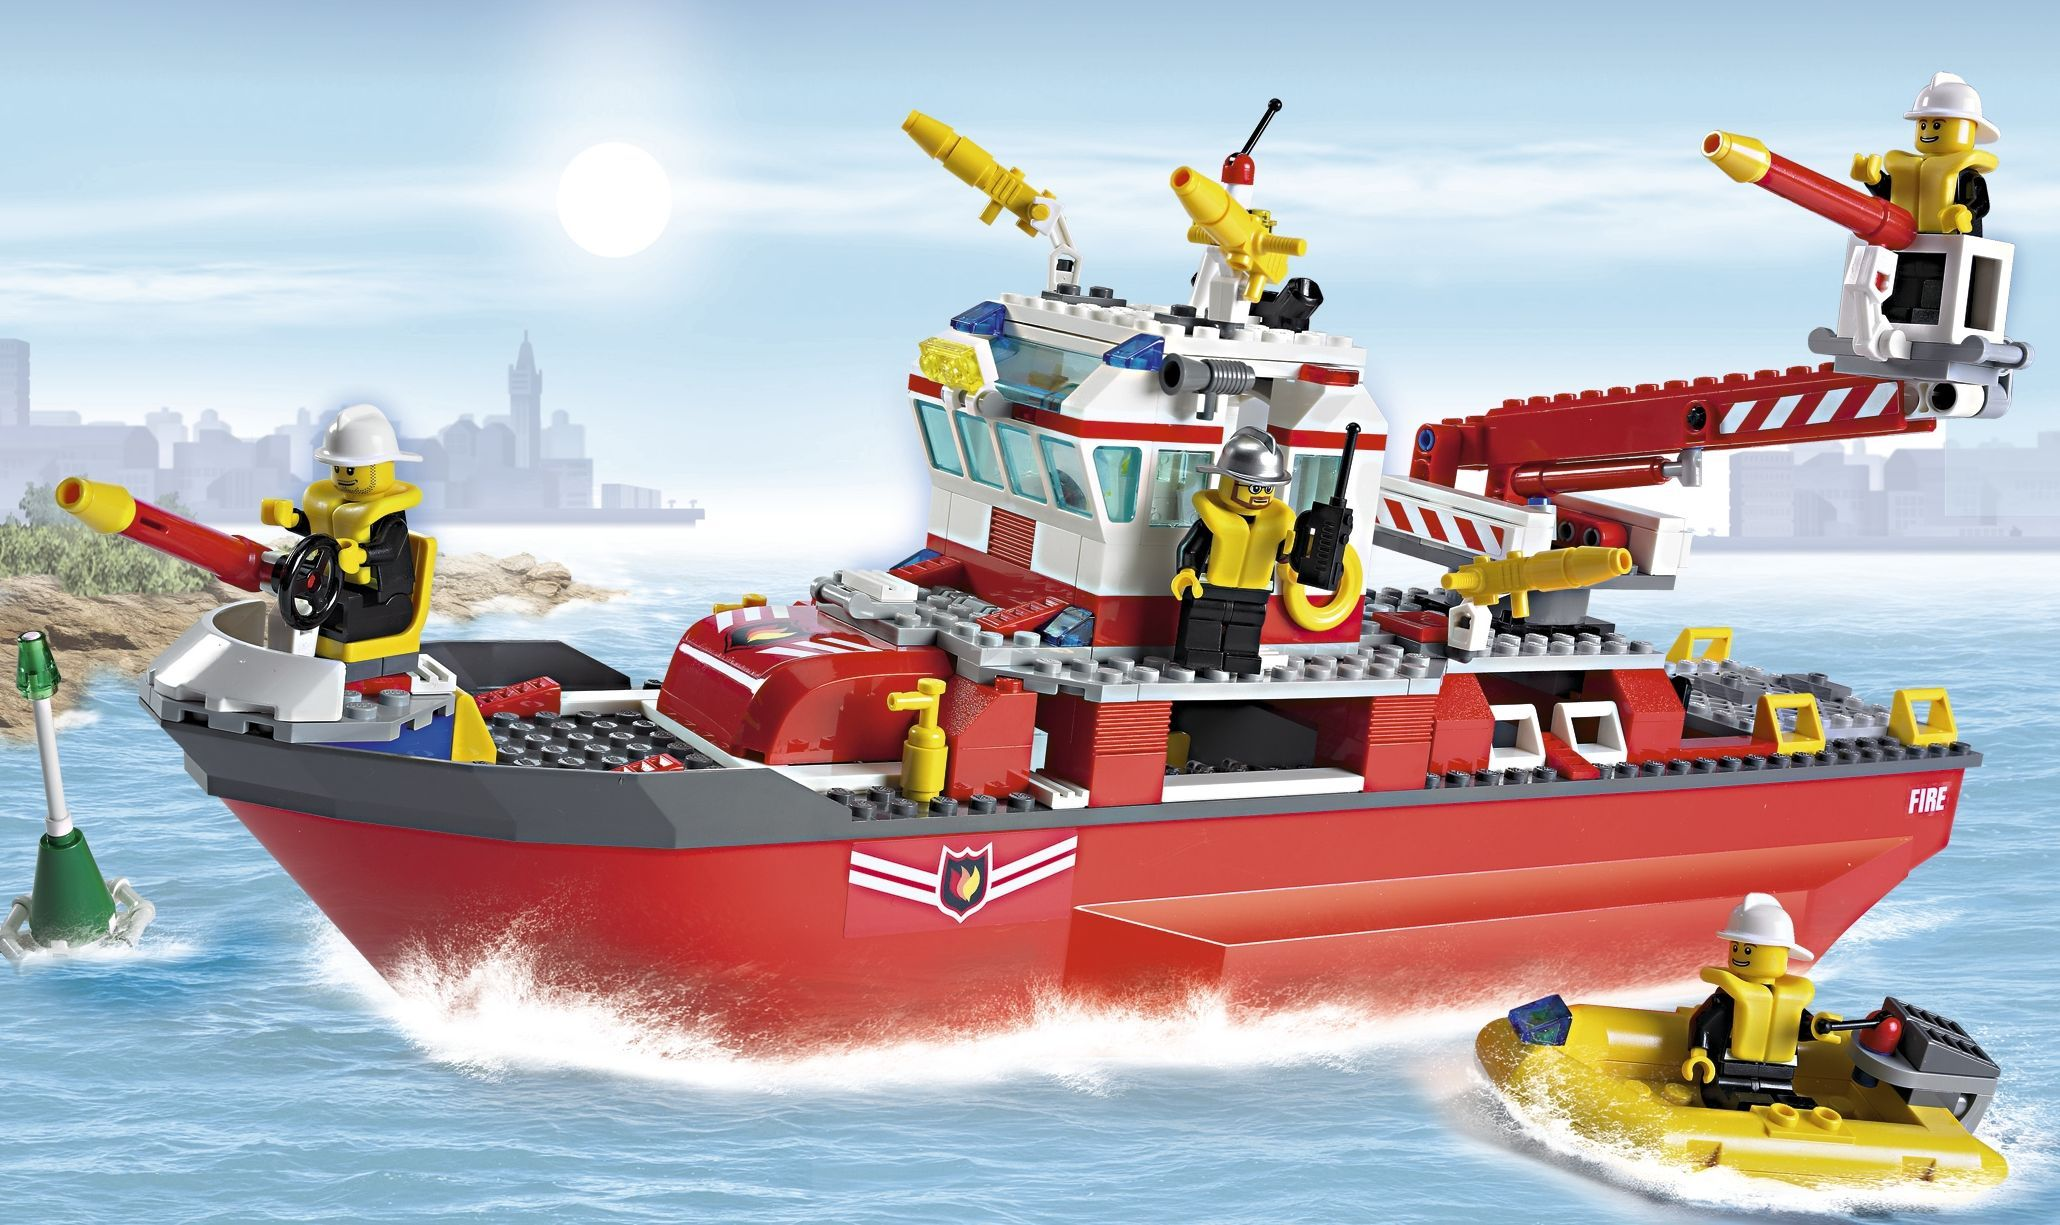 Lego Boats Lego City 7207 Fire Boat Red Lego City 7207 Fire Boat